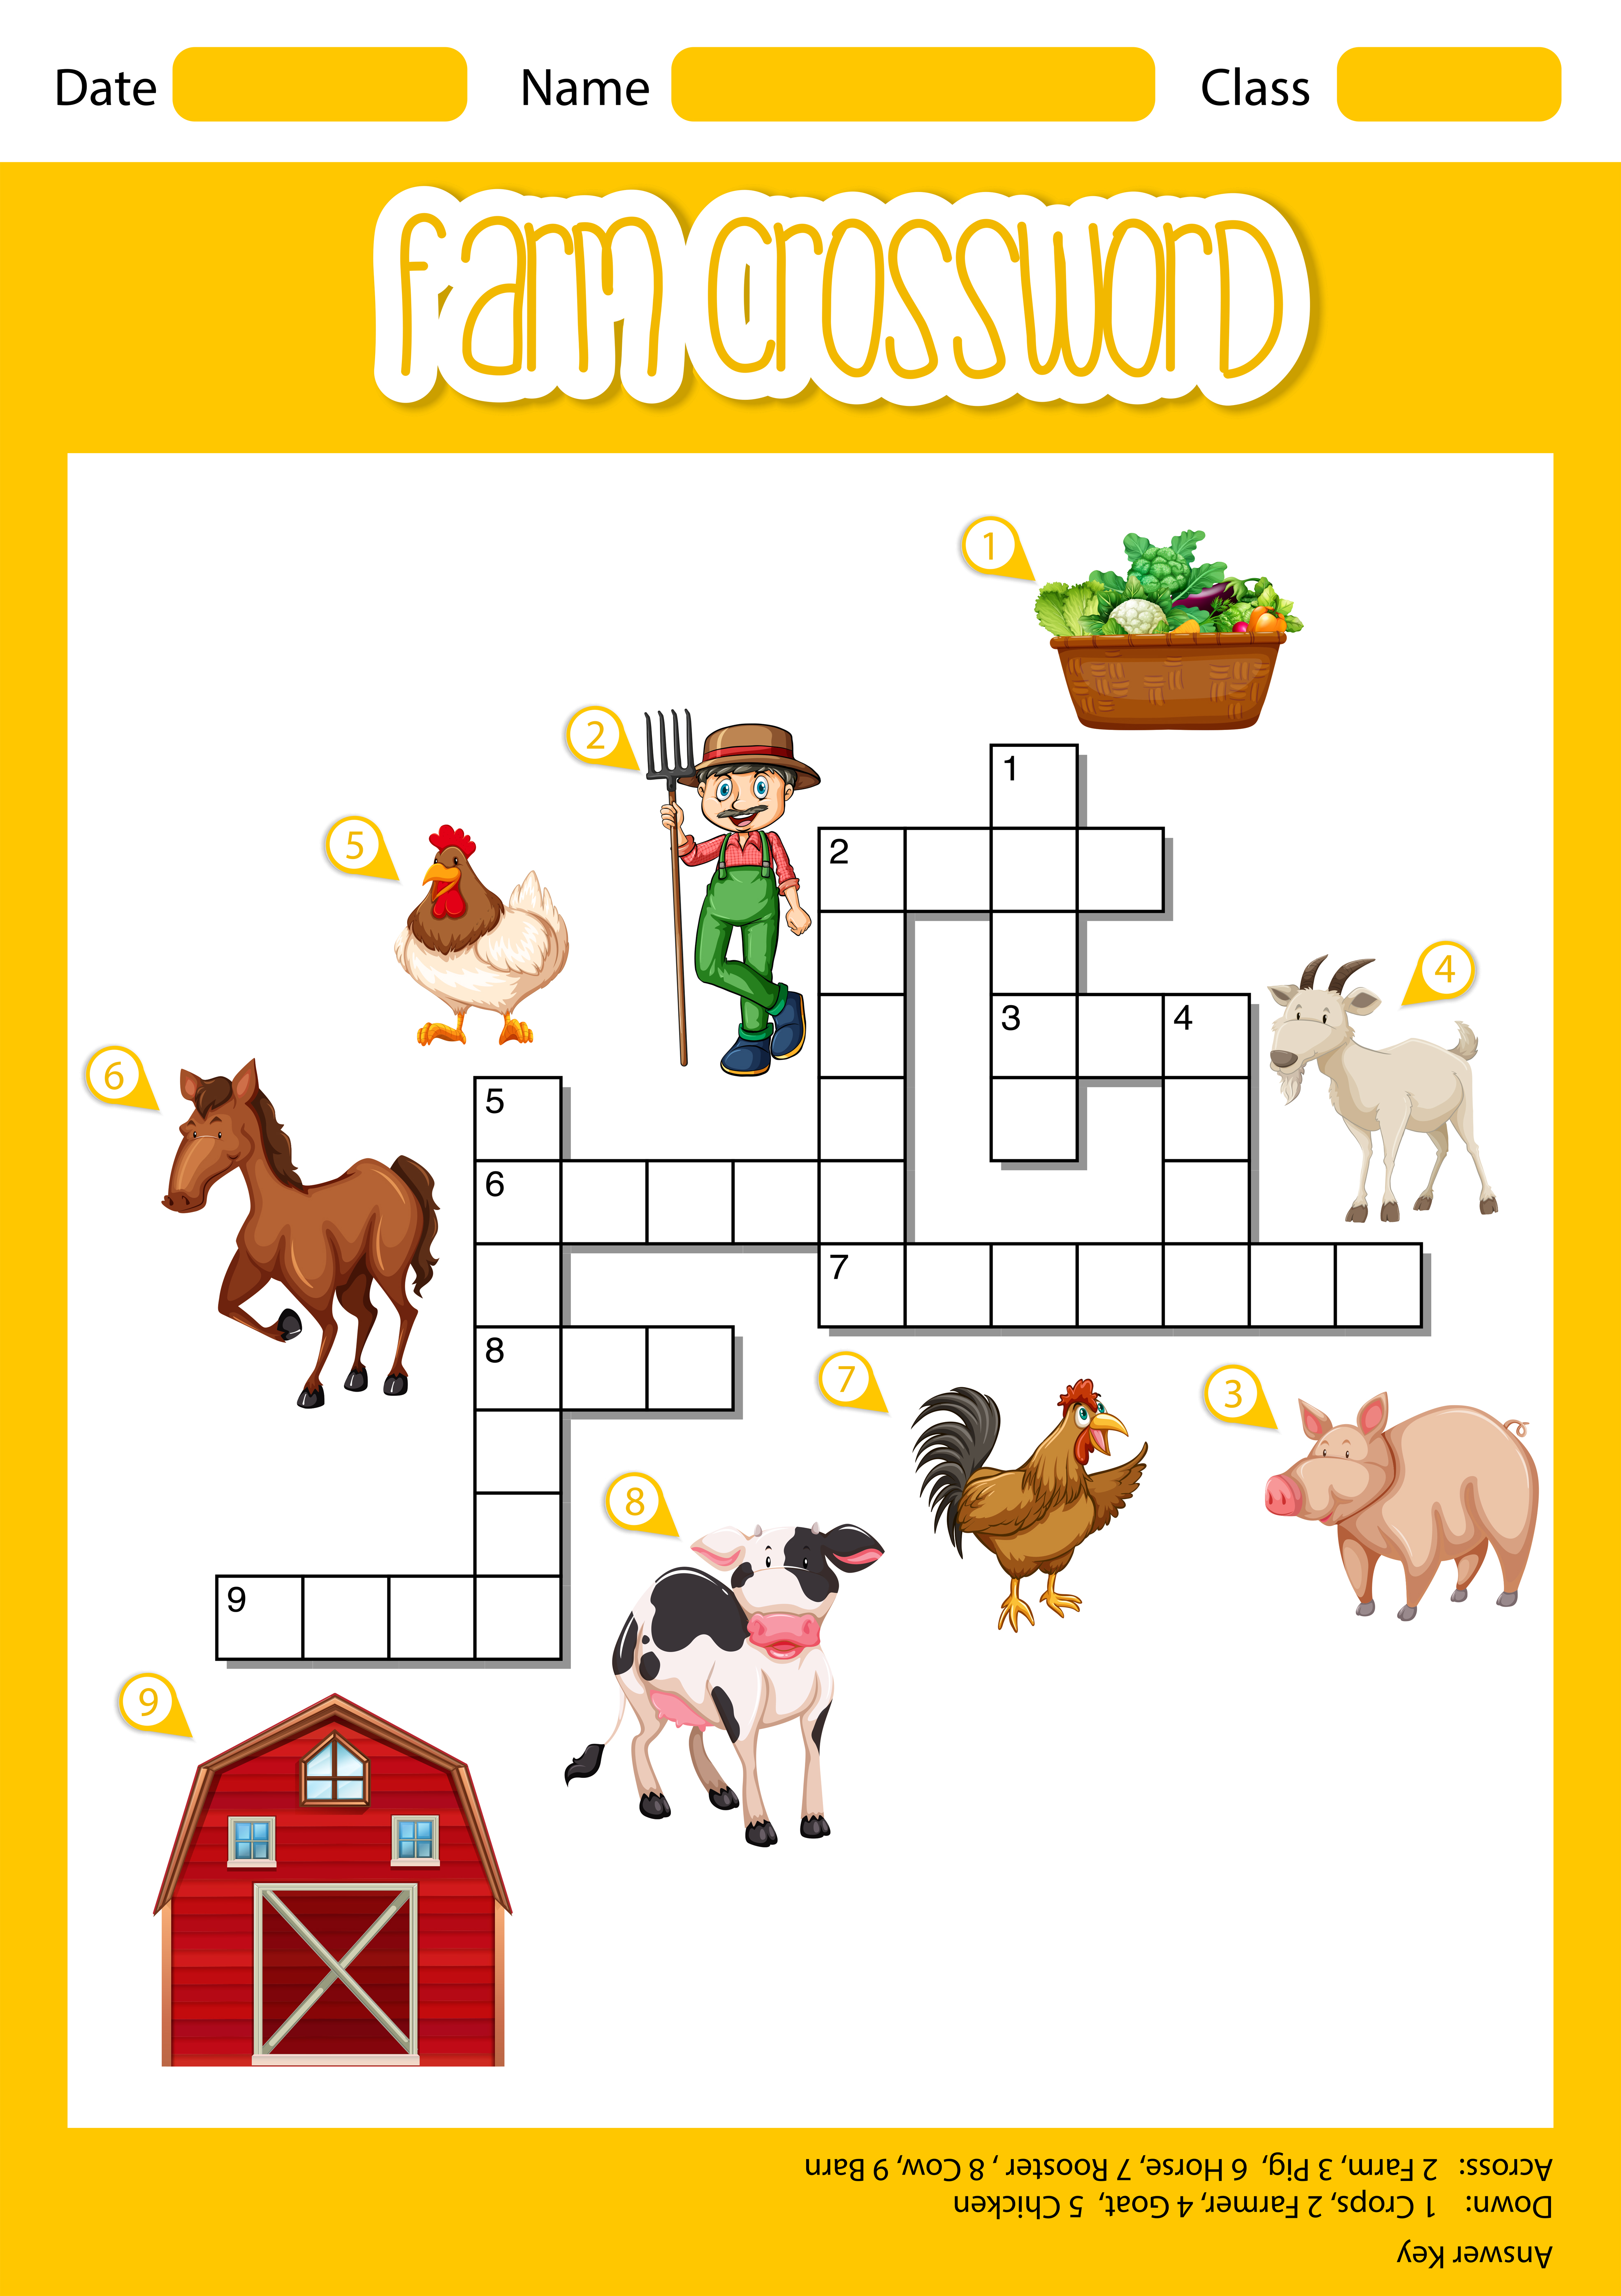 A farm crossword sheet - Download Free Vectors, Clipart ...